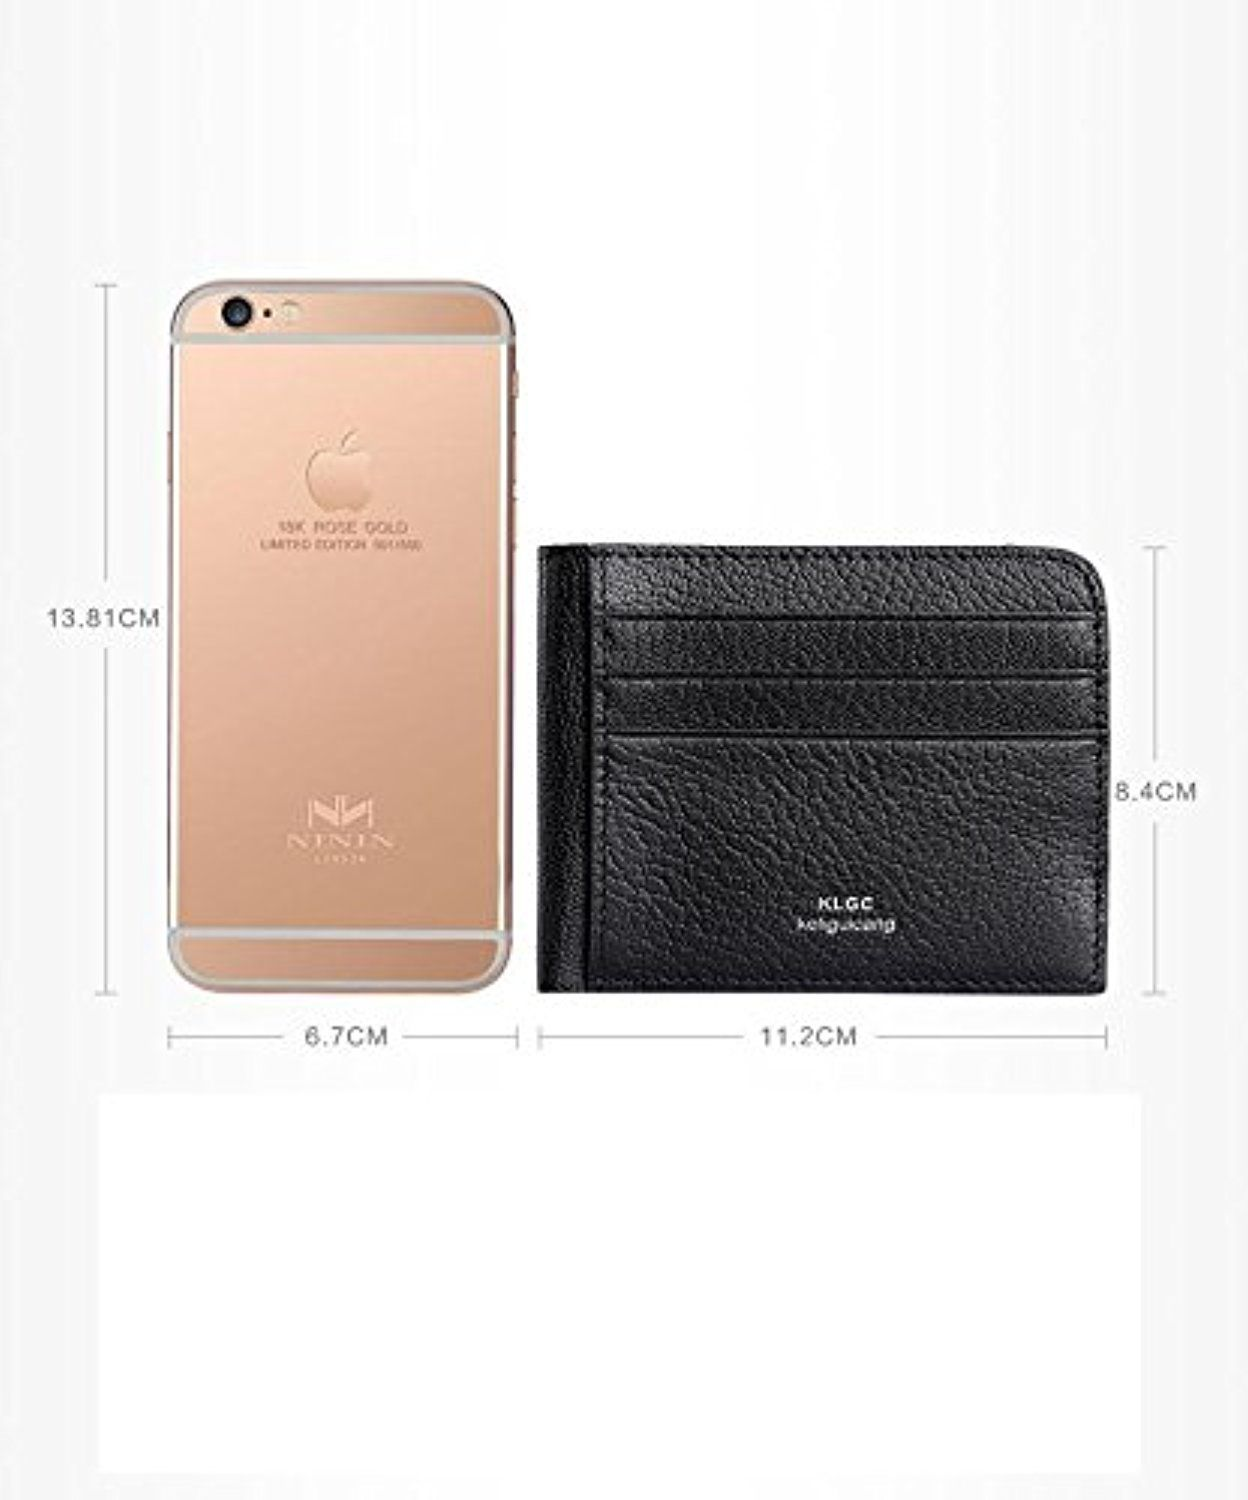 Unisex leather thin credit card holder slim business card case super unisex leather thin credit card holder slim business card case super soft minimalist wallet with money colourmoves